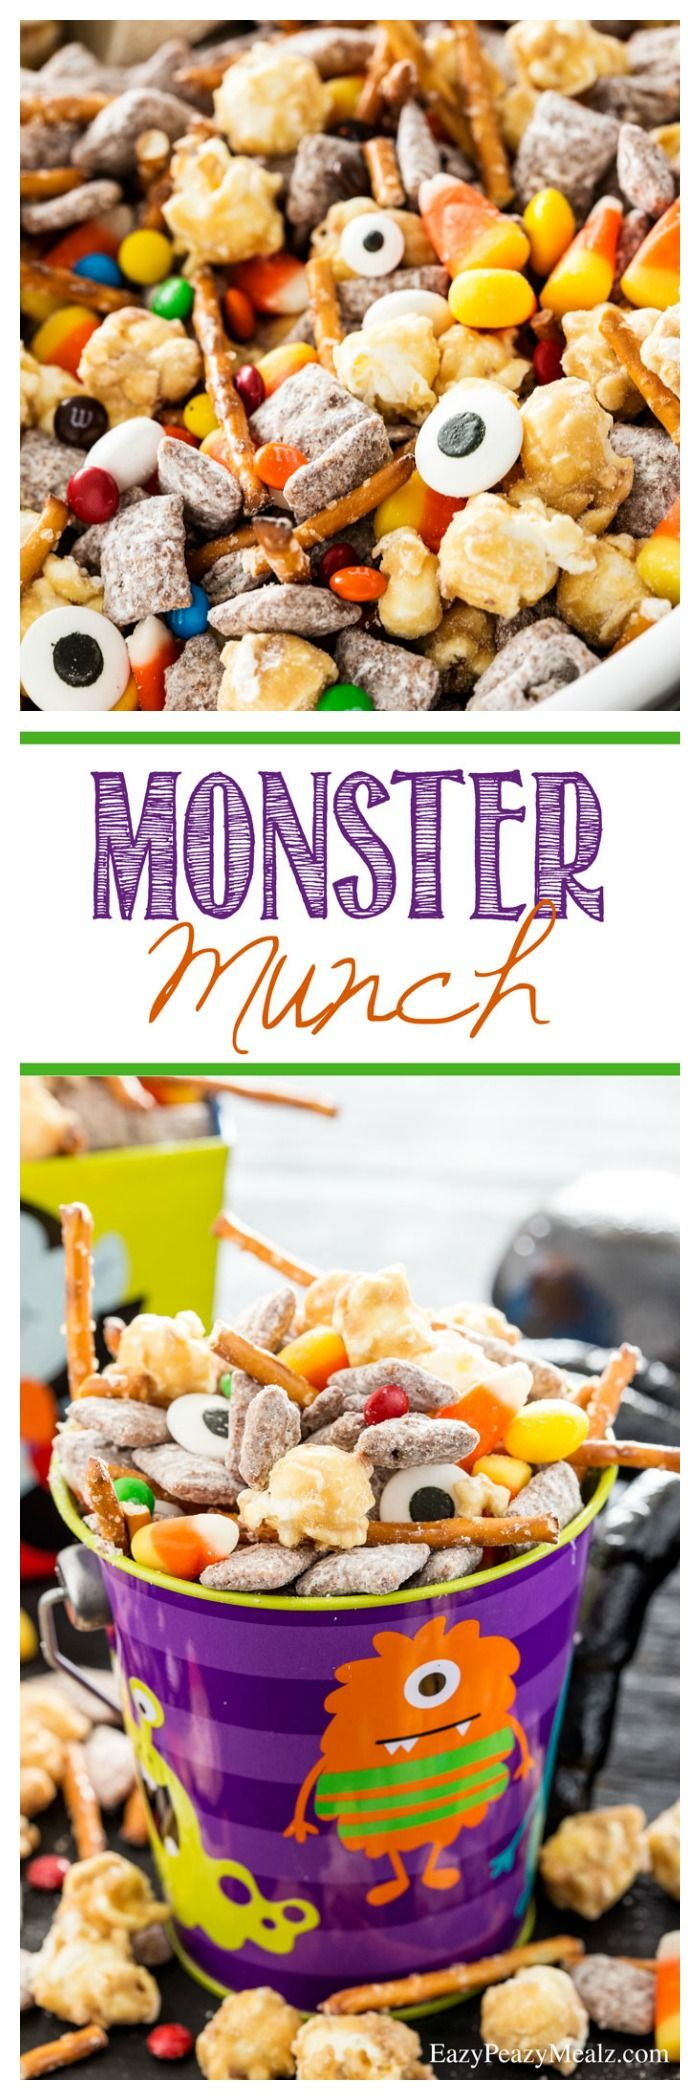 Best 25+ Monster mash ideas on Pinterest | Halloween party ideas ...